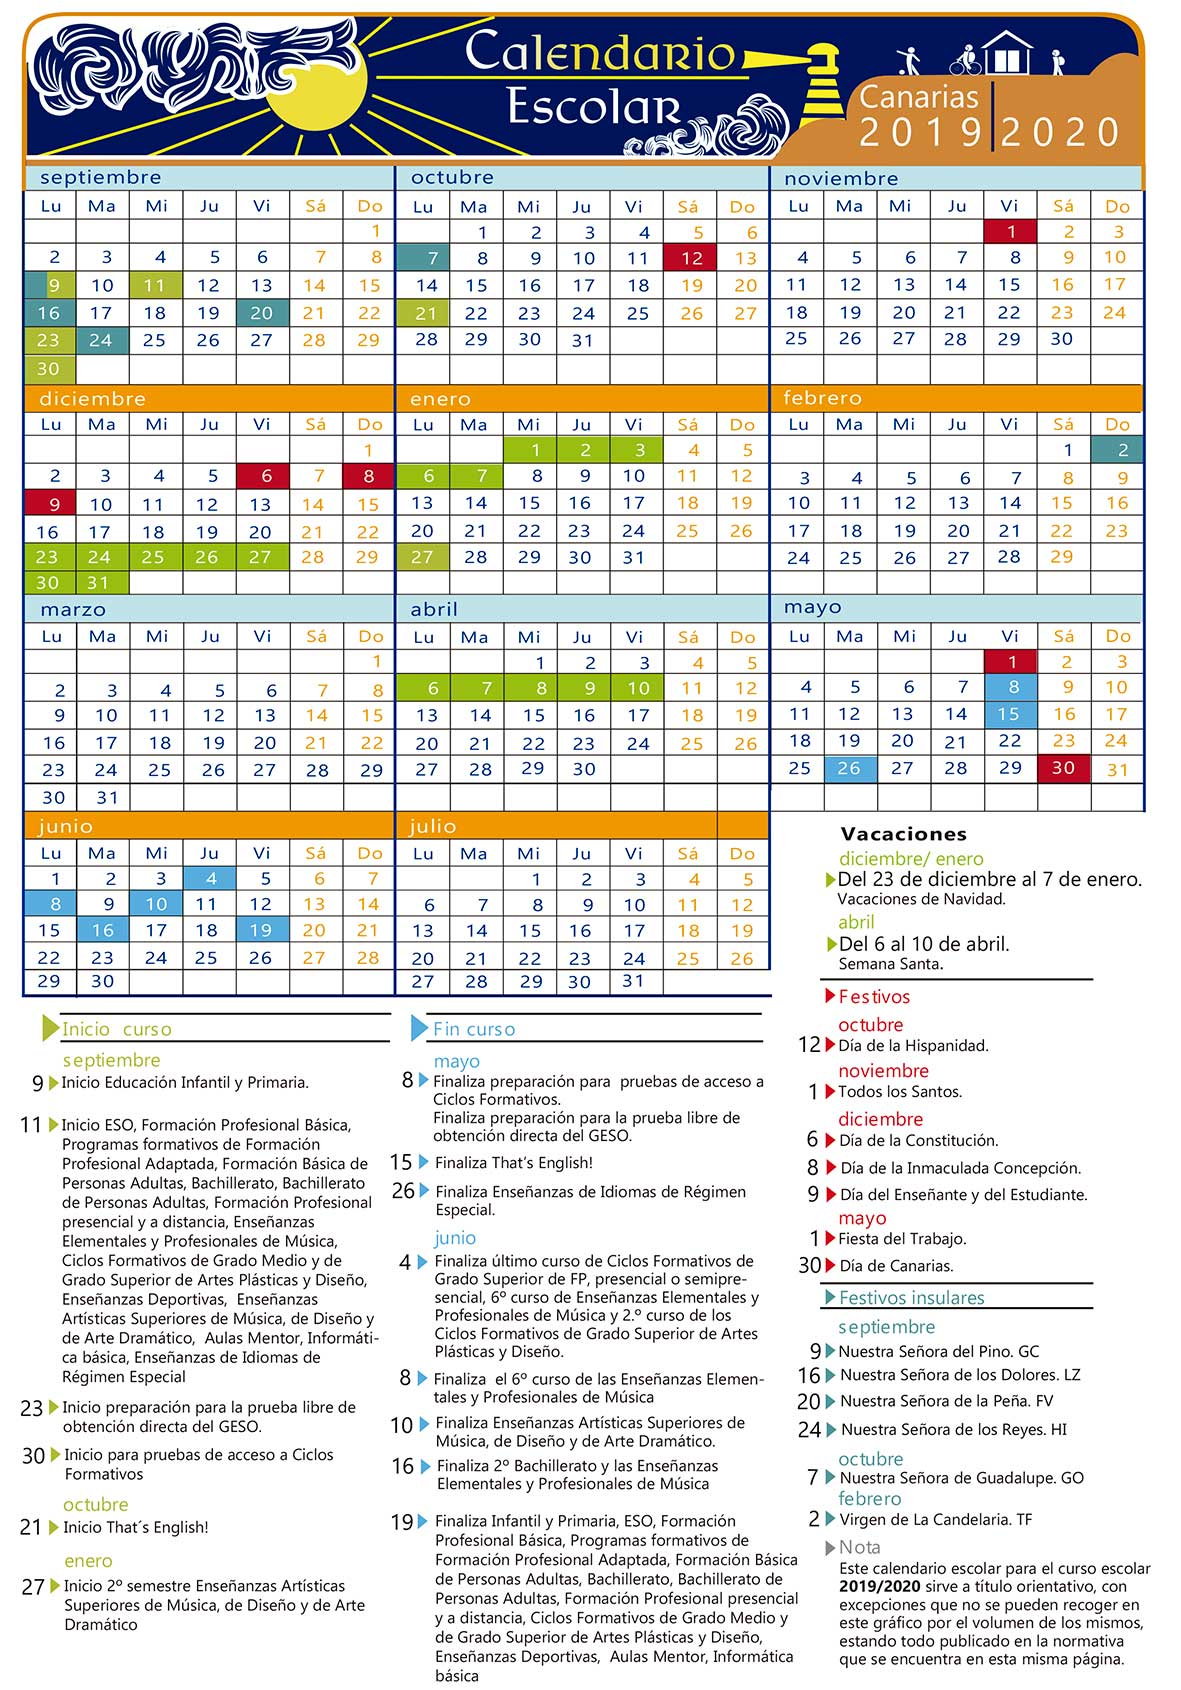 Calendario 2019 Escolar 2020 Madrid.Calendario Escolar Centros Consejeria De Educacion